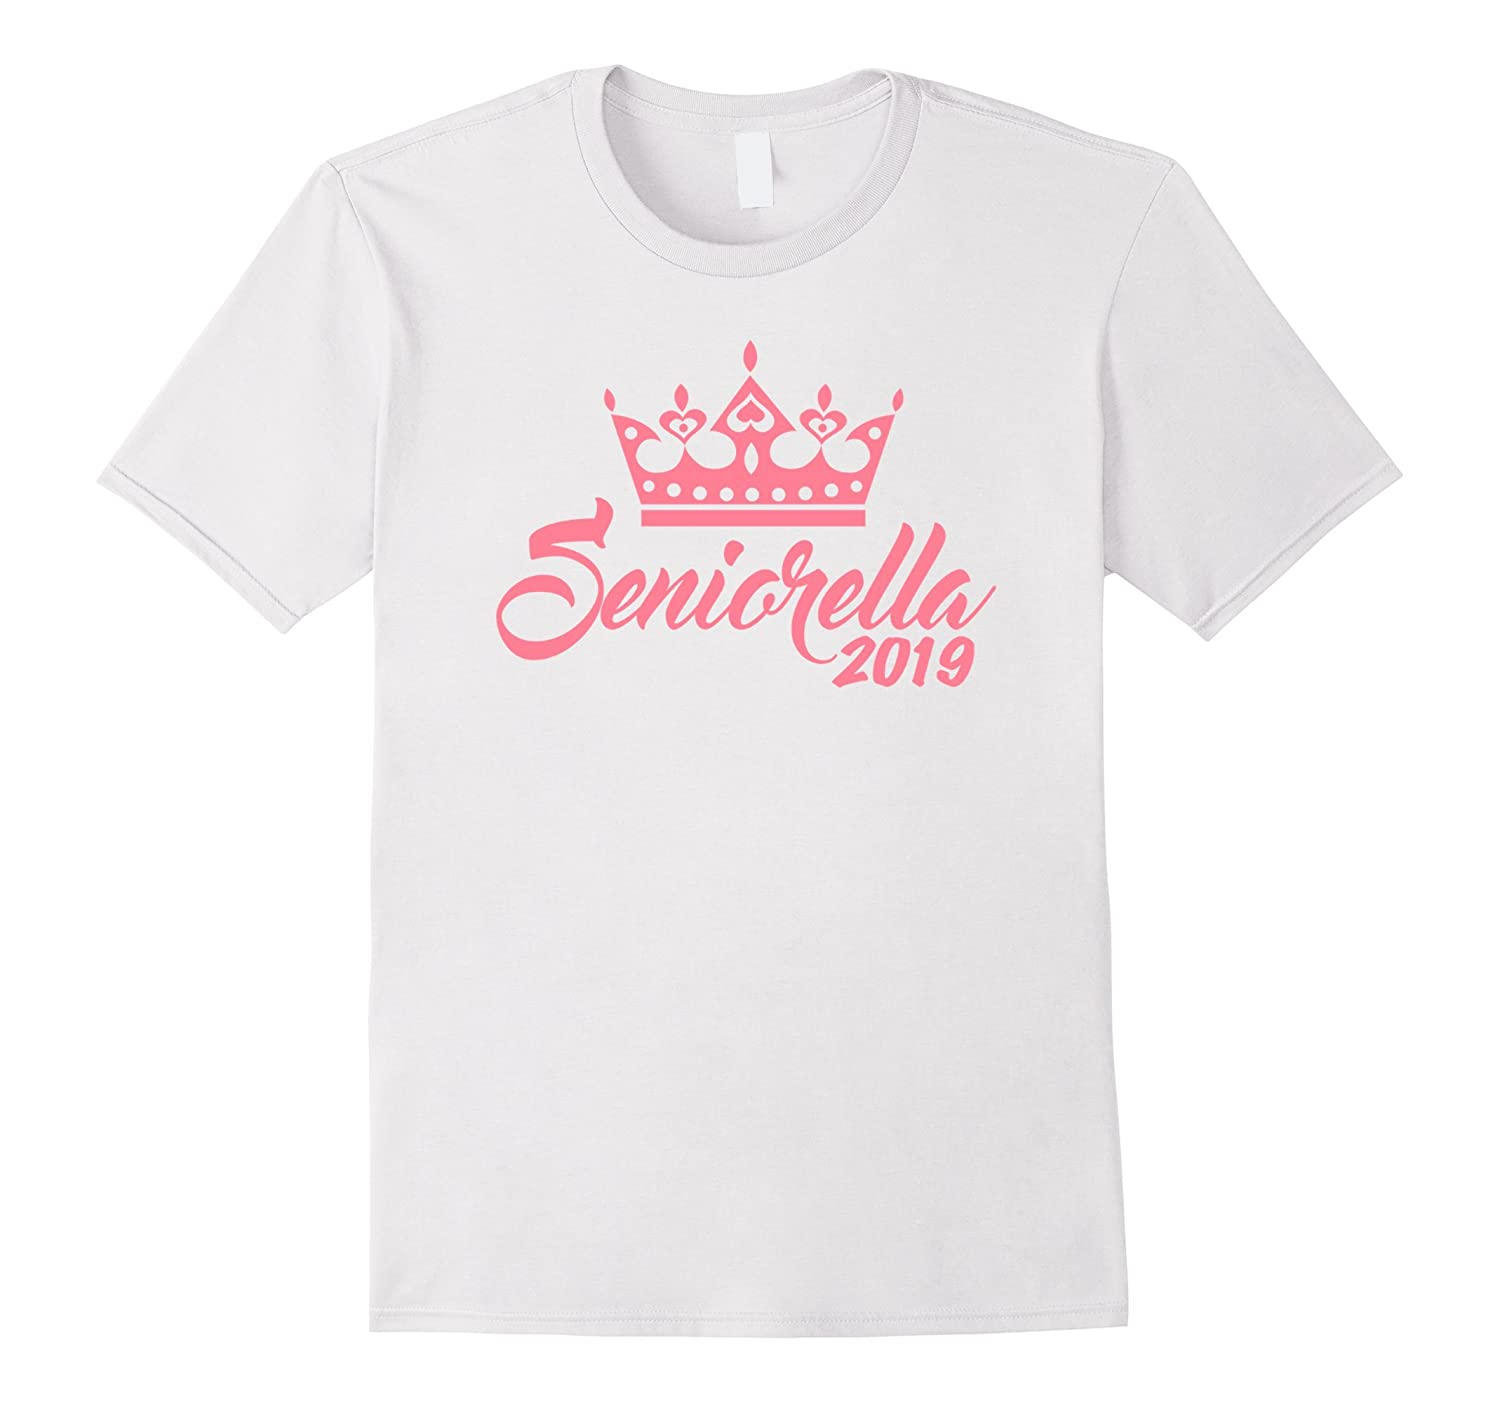 seniorella 2019 t shirt senior class of 2019 graduation cd canditee. Black Bedroom Furniture Sets. Home Design Ideas